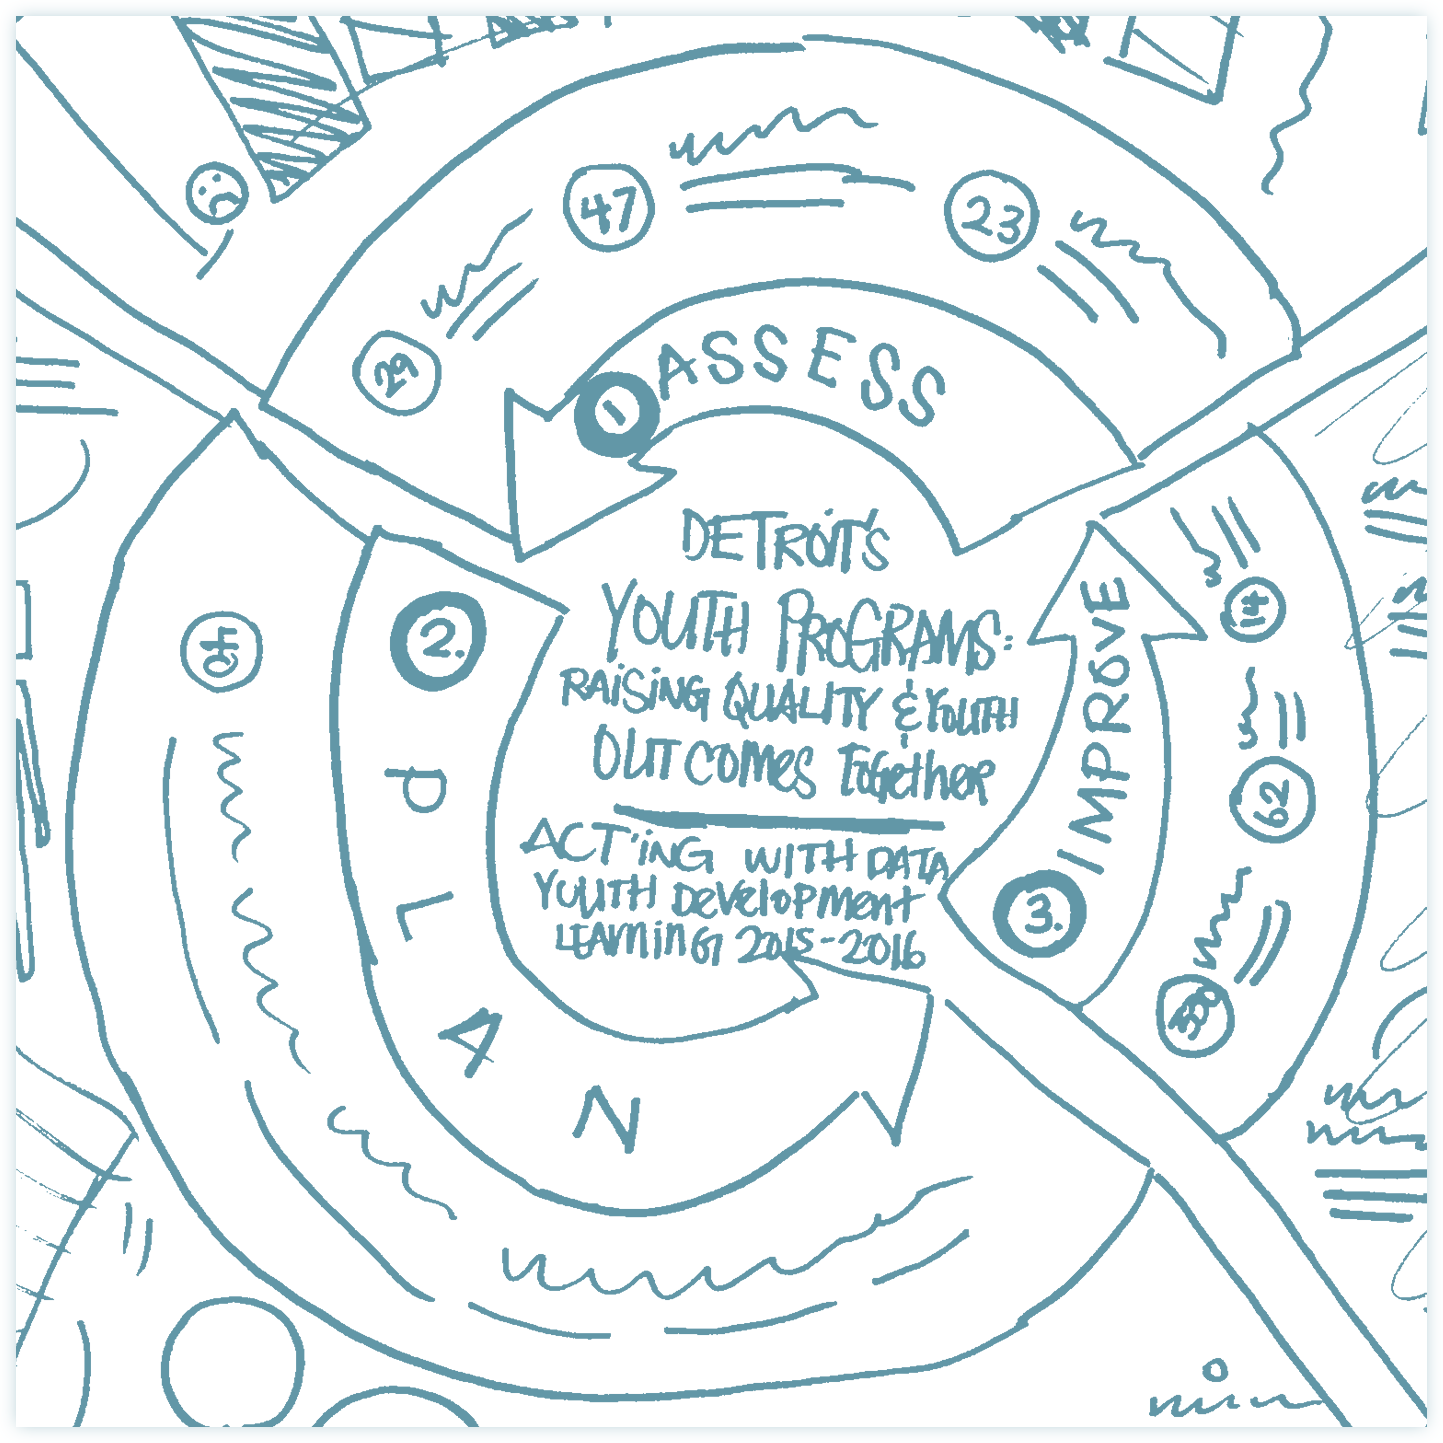 YDRC_Infographic_Sketch1.png